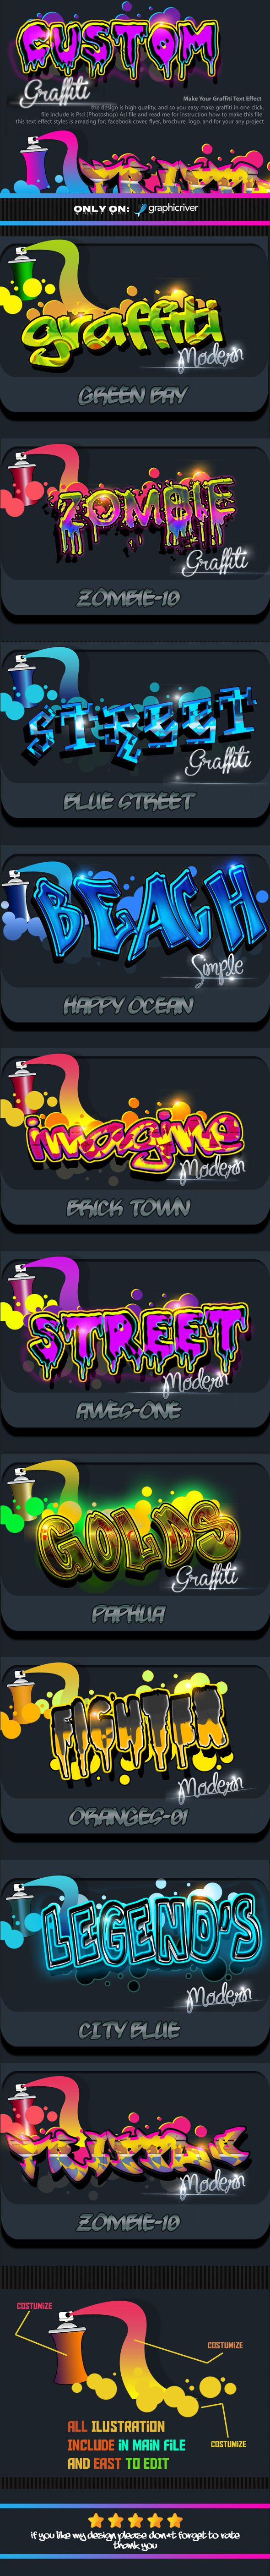 Costum Graffiti Text Effect Styles by Design_8 Costum Graffiti Text Effect Styles is with high quality can produce effect more perfect and interesting for your text, all style e